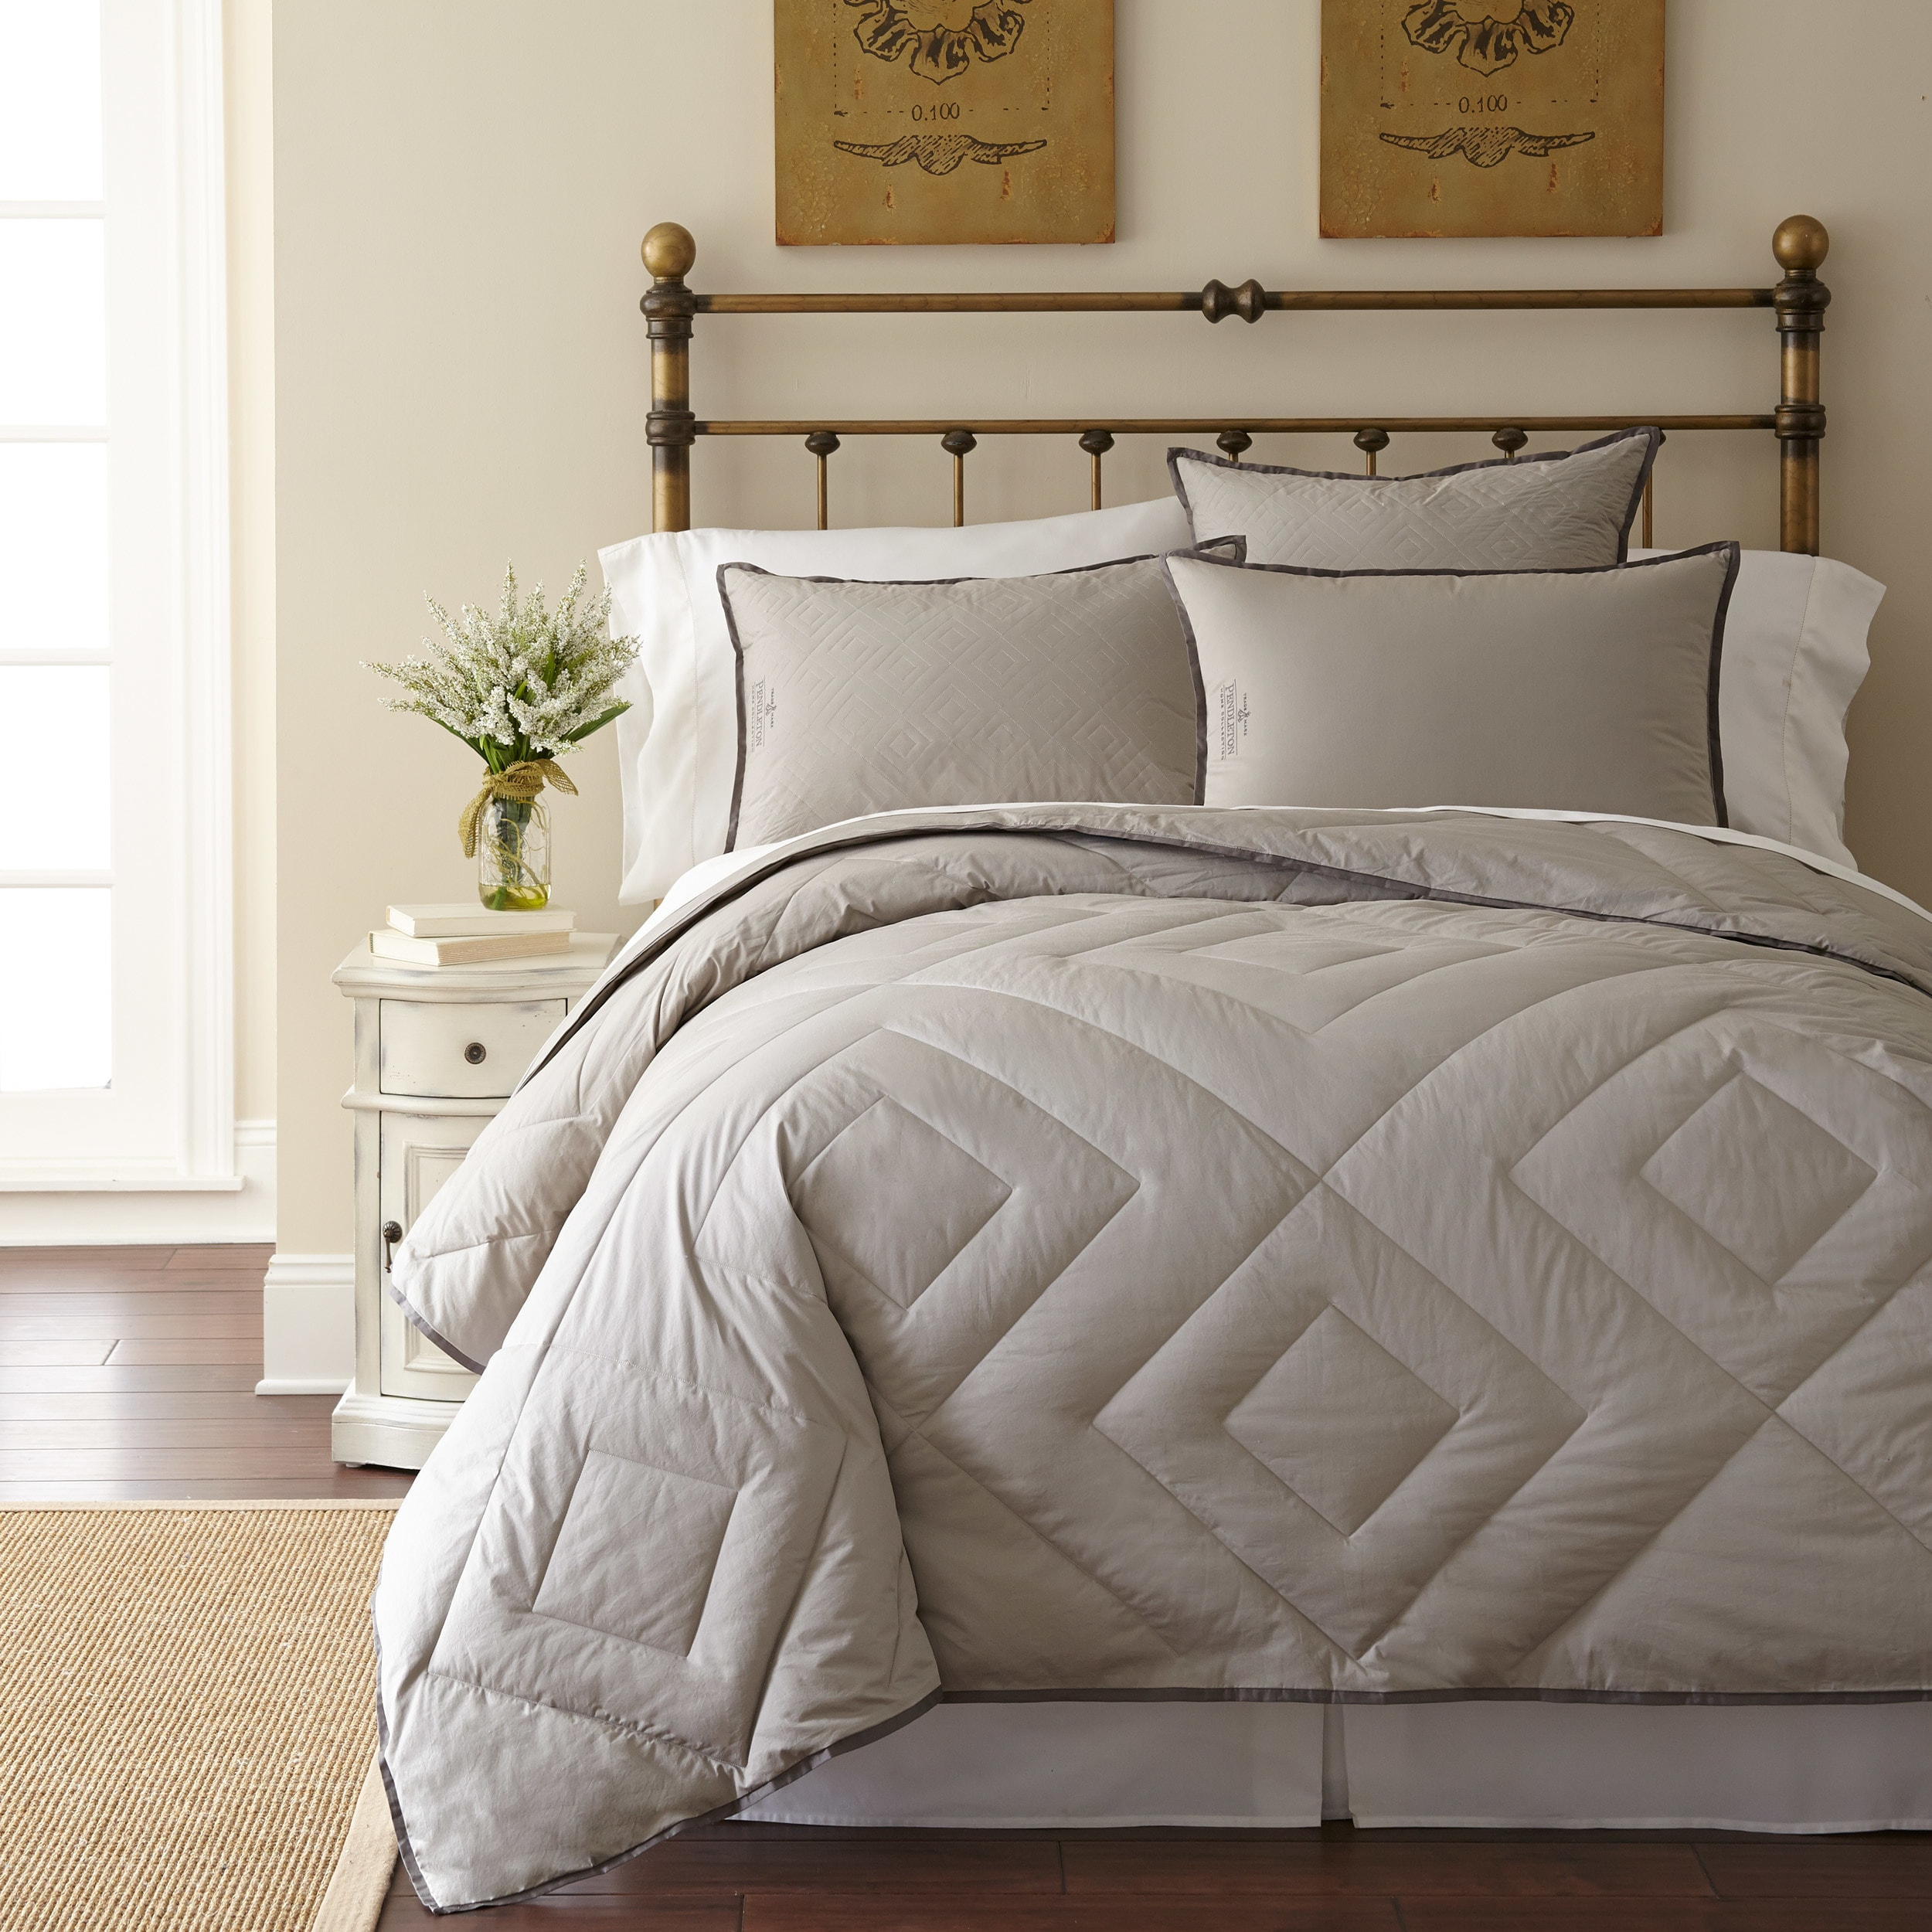 fleur set cab comforter walmart modern com preston lis de king chic bedding fancy sheets vintage queen home size piece boys sets at decor mainstays ideas tuscan bed cabinet only shabby blog stores pinterest